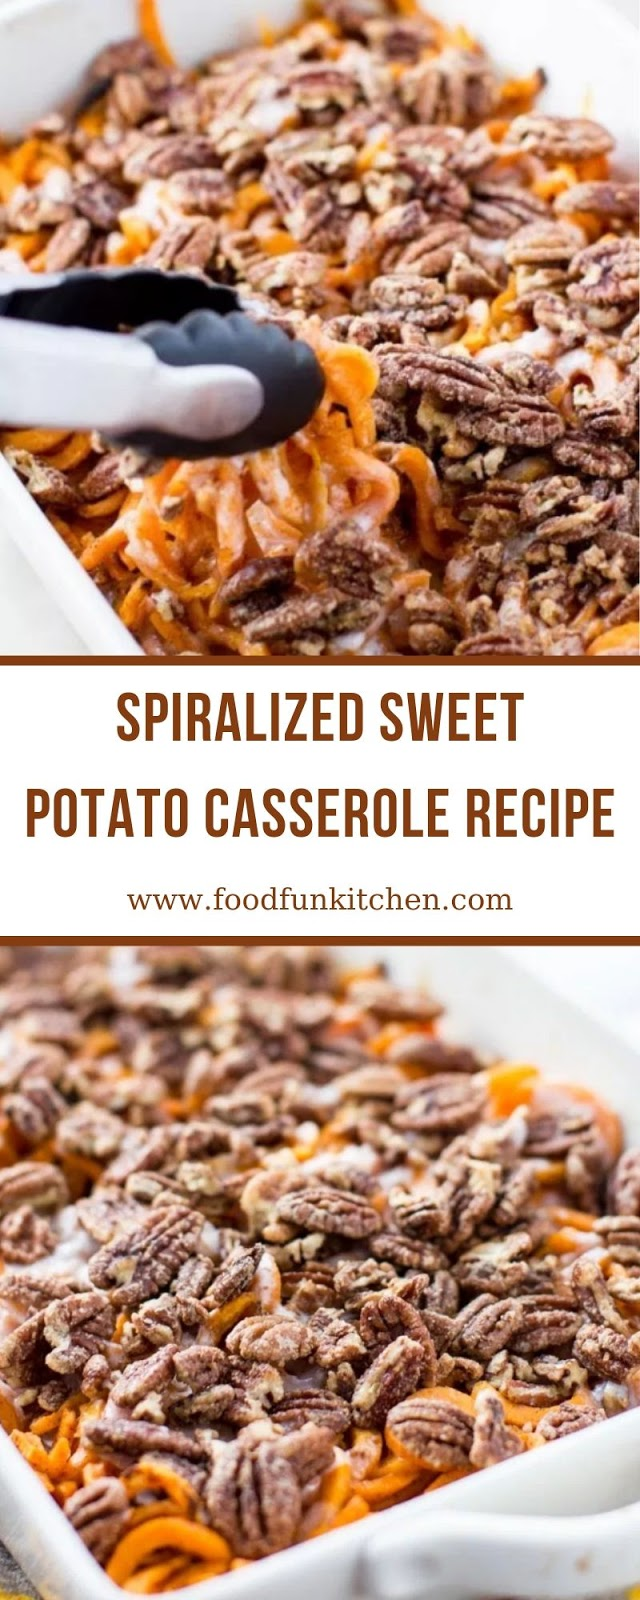 SPIRALIZED SWEET POTATO CASSEROLE RECIPE